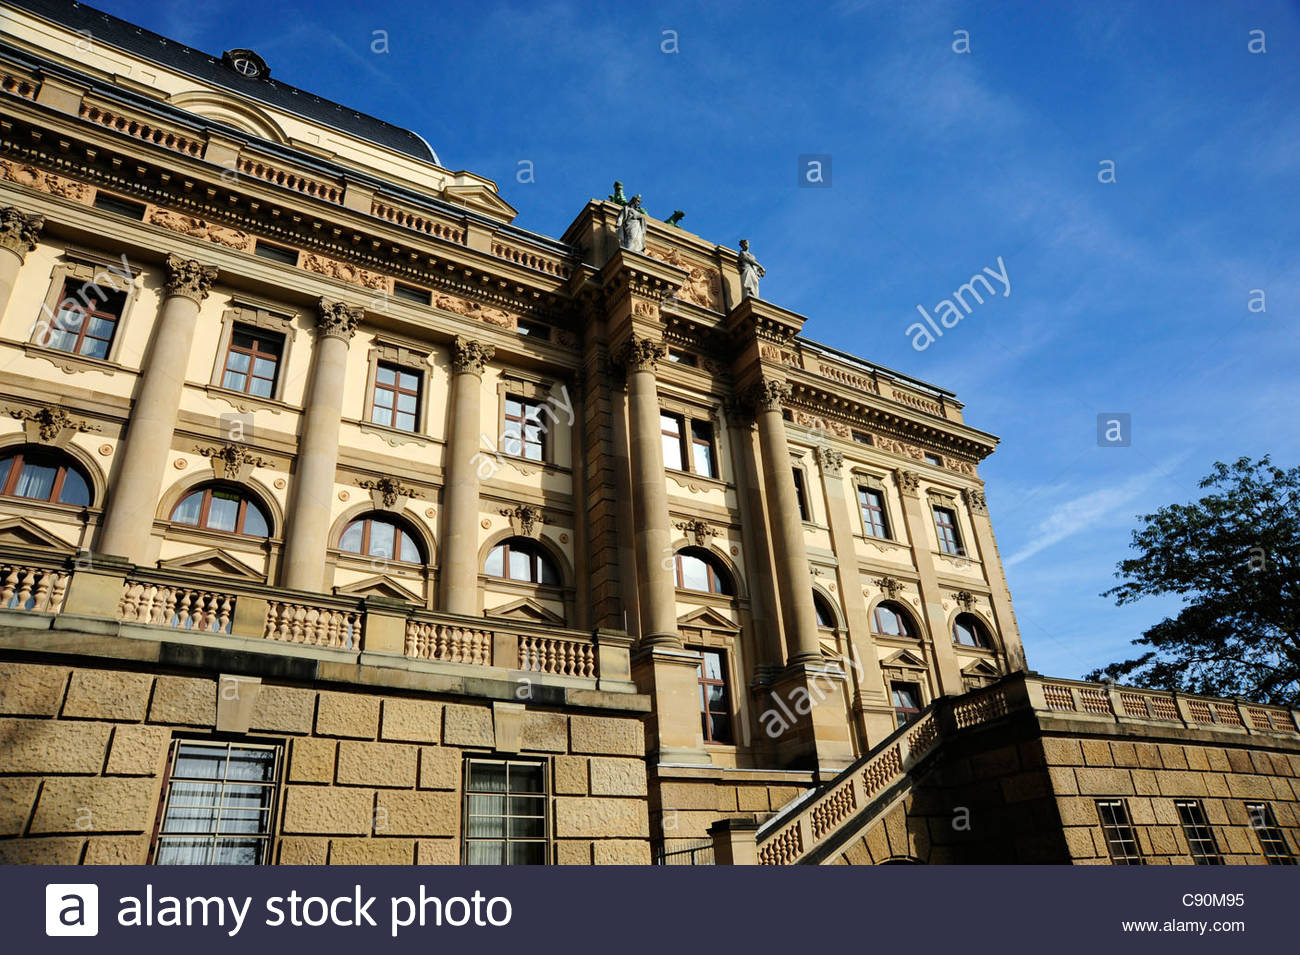 Hessian State Theater, Wiesbaden, Hesse, Germany, Europe - Stock Image